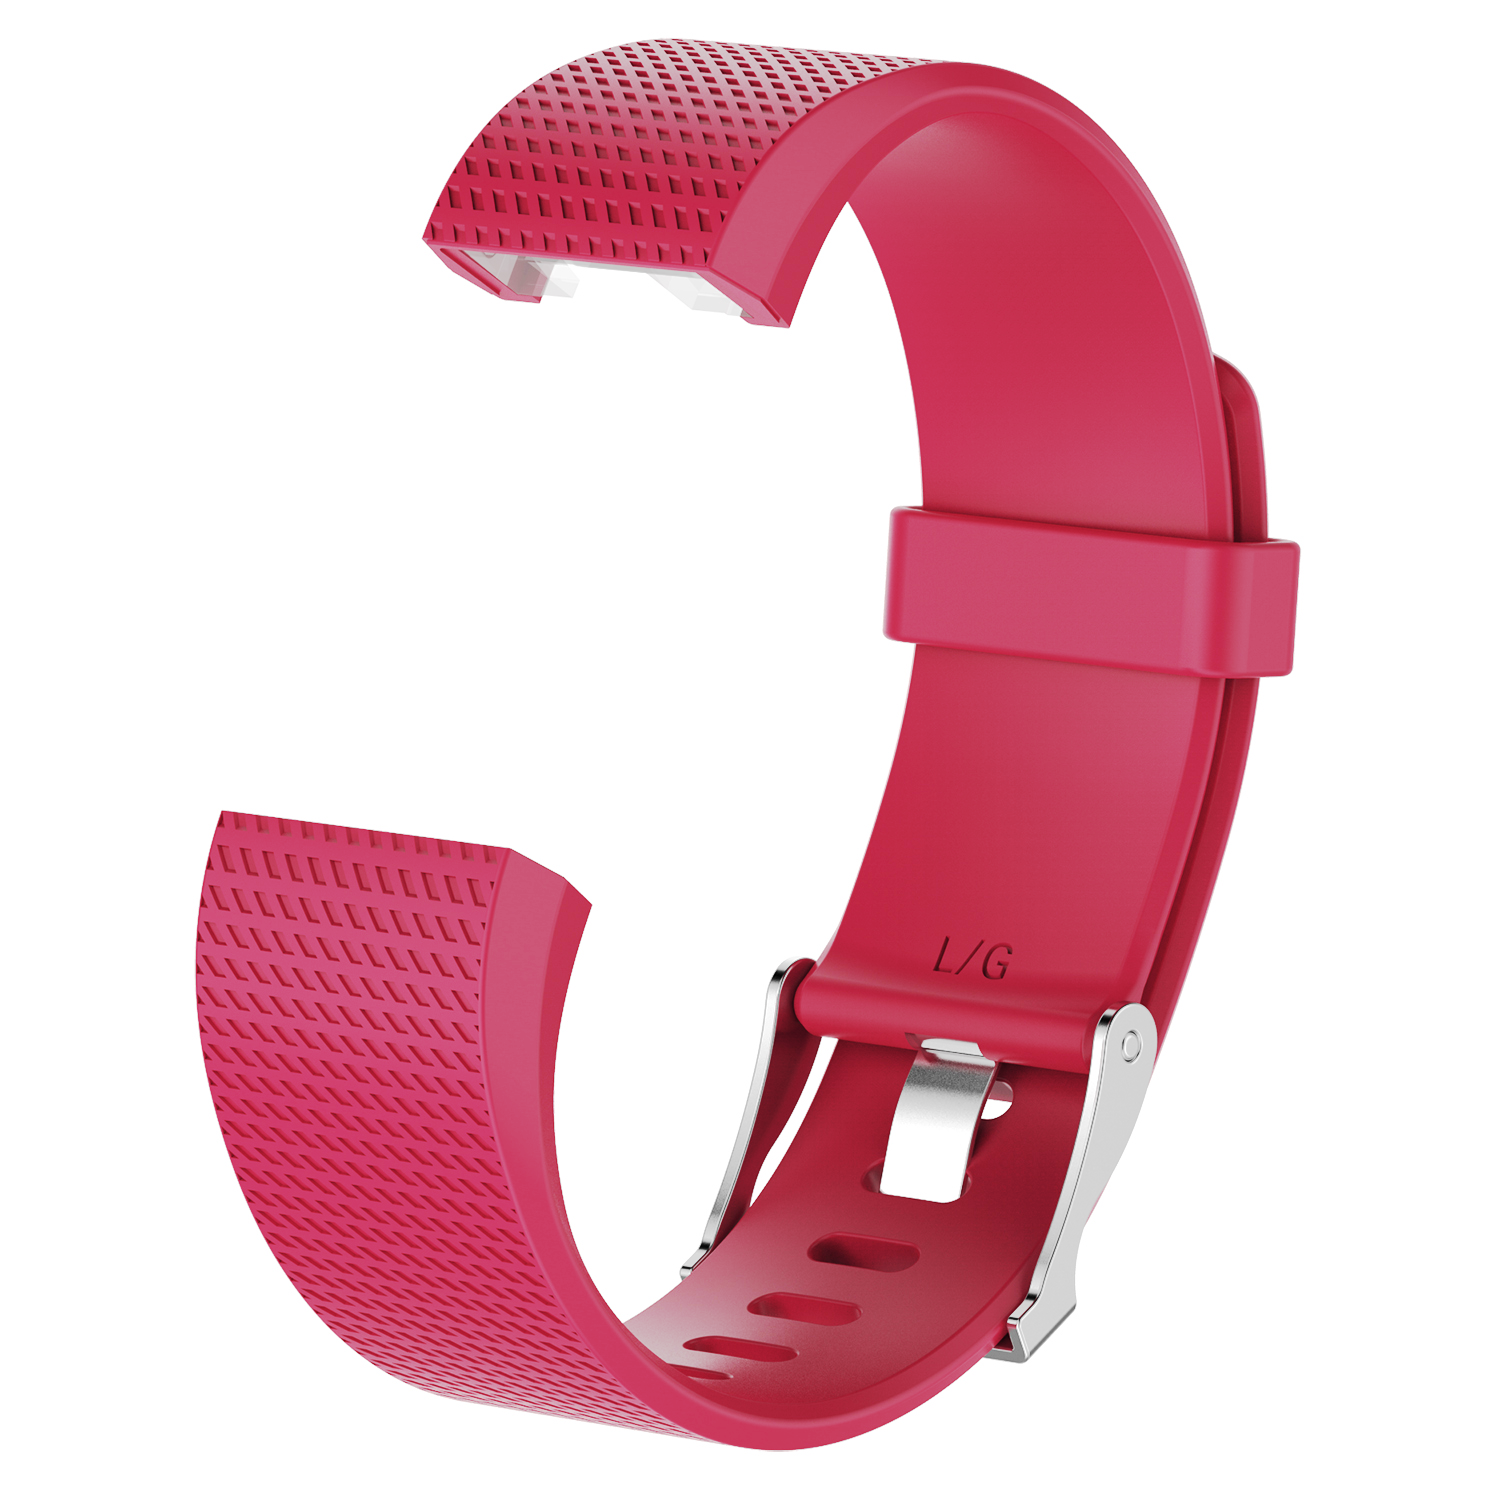 Replacement-Silicone-Wristband-Watch-Strap-Bands-Bracelet-For-Fitbit-Charge-2 thumbnail 44